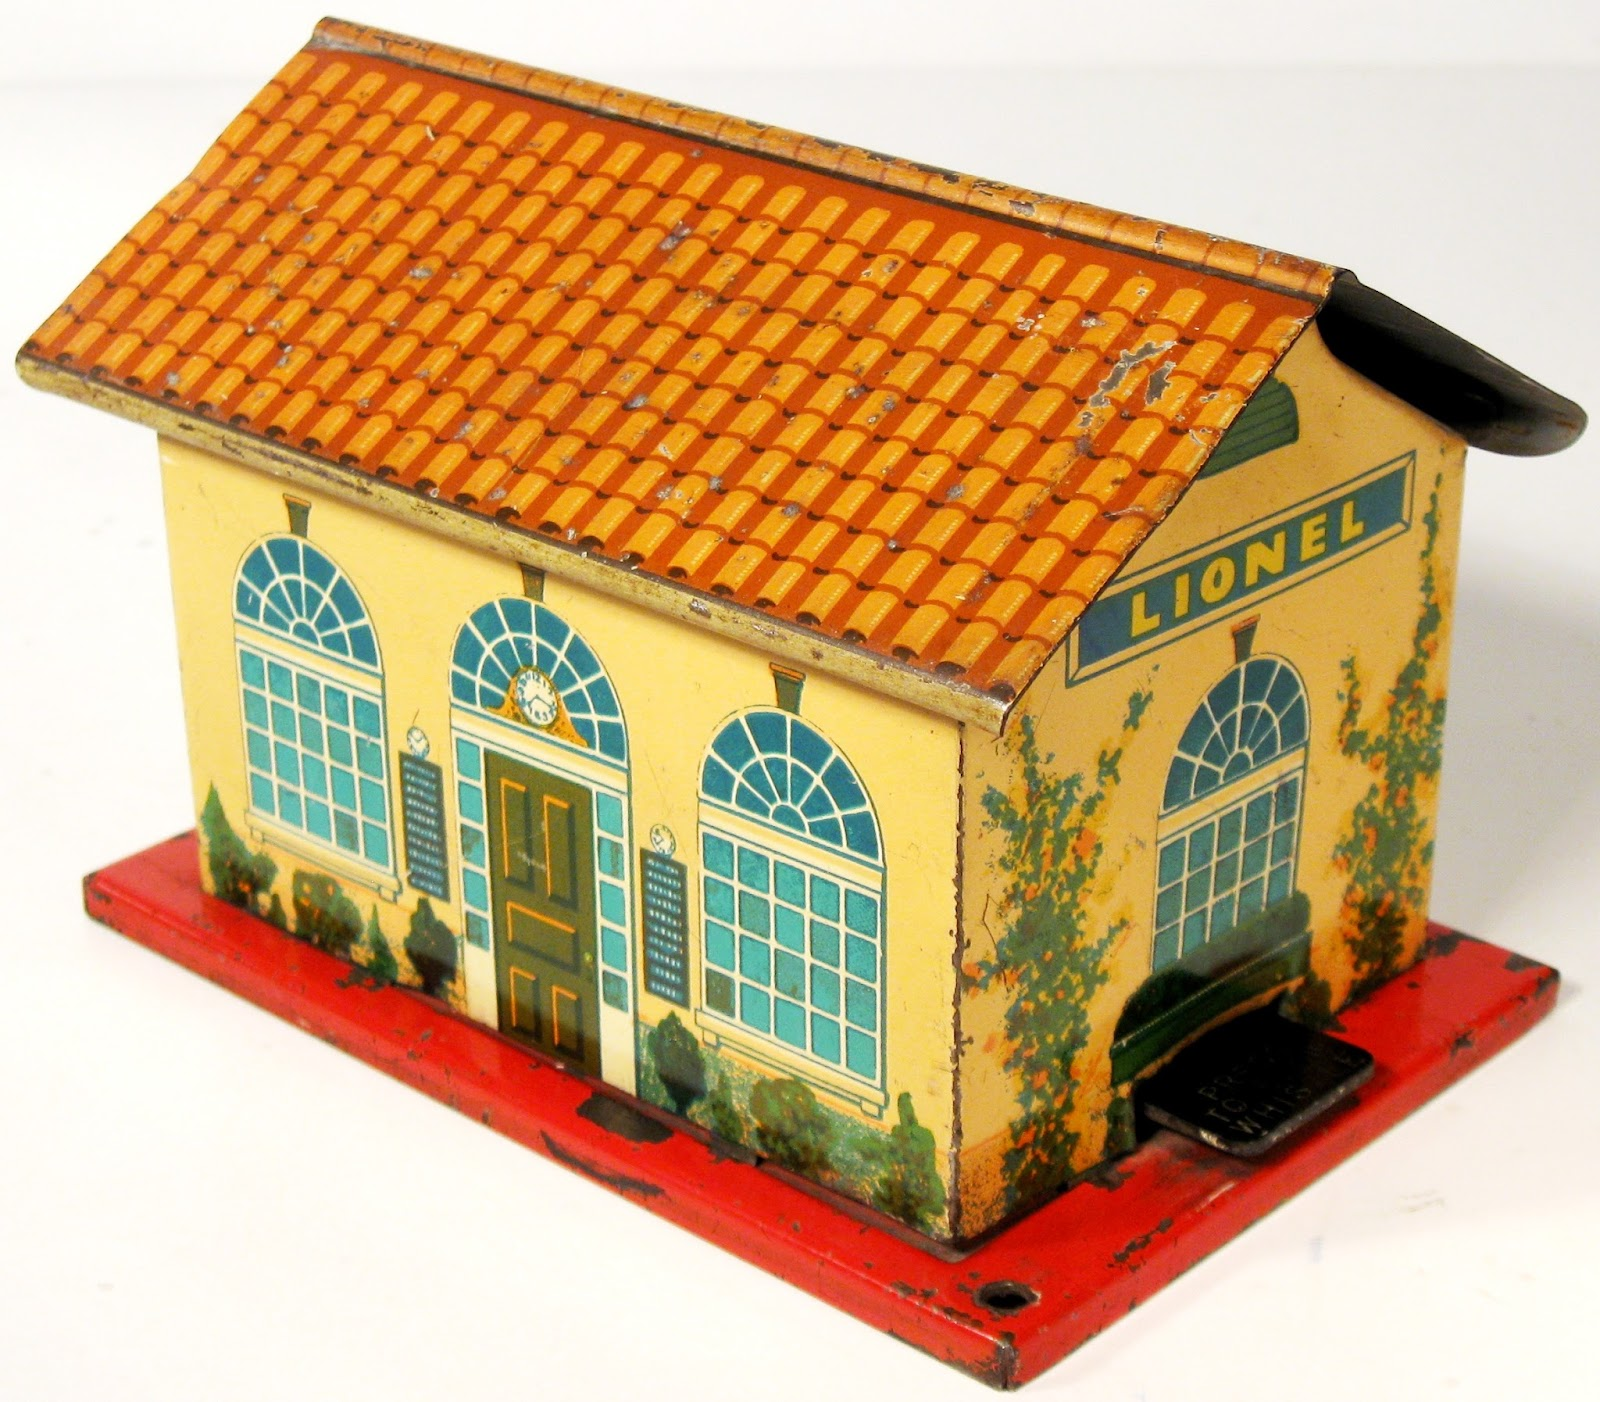 Toys and Stuff: Lionel #48W Whistle Station